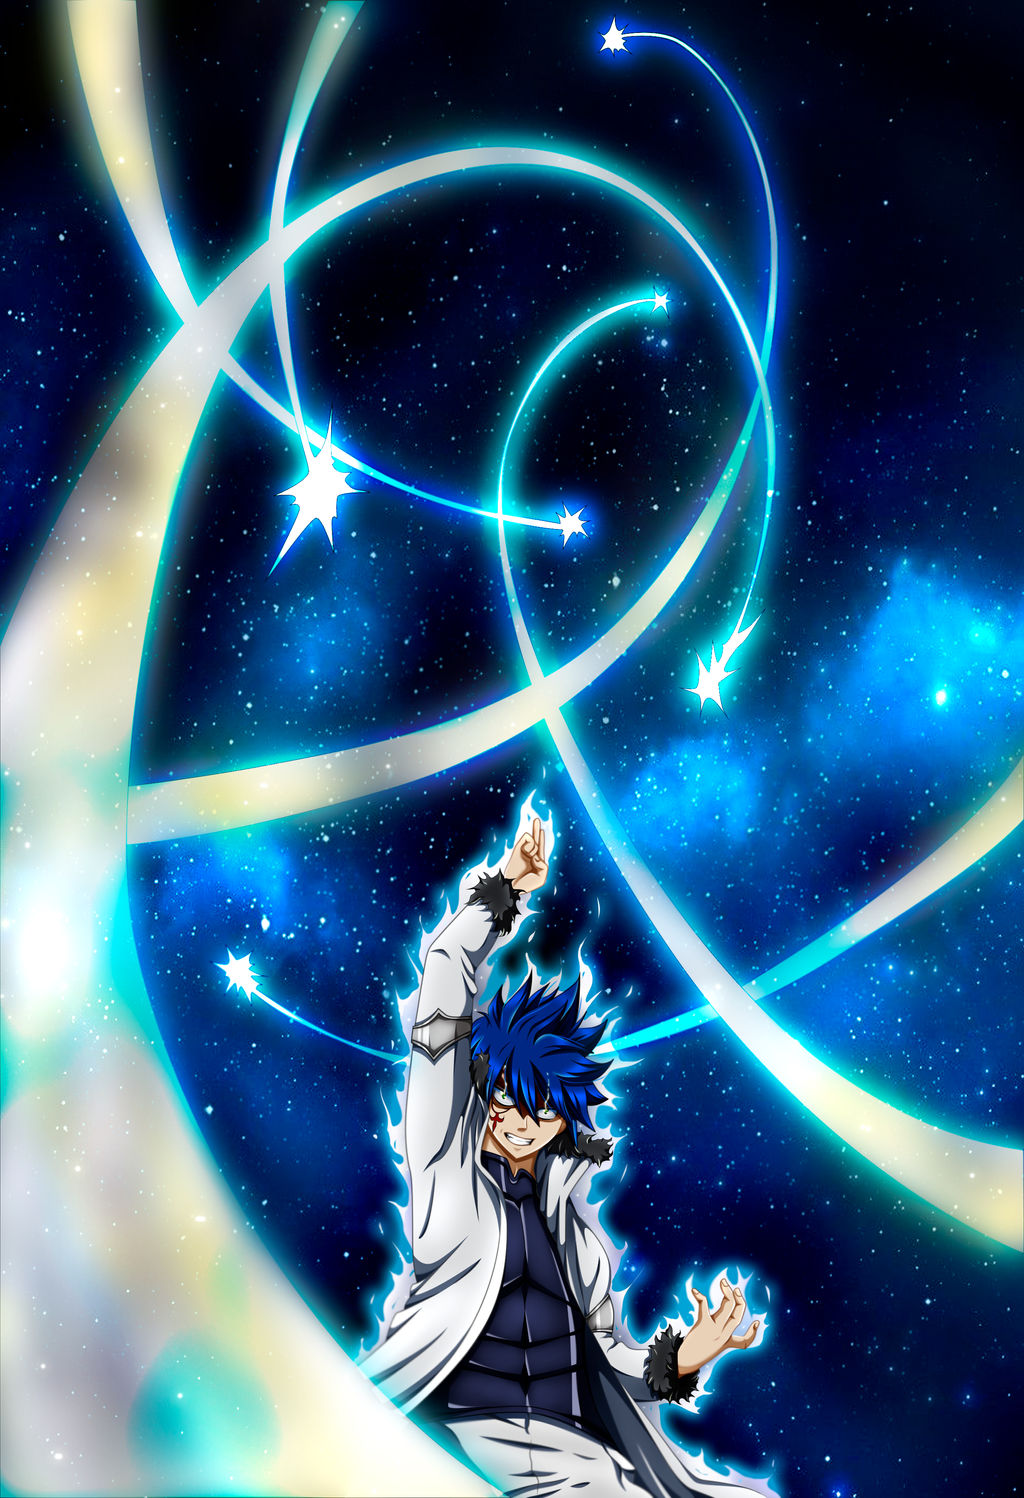 Jellal Pleiades Attack By Mirajanee On Deviantart One of the honorable magic counsil member• one of the 10 wizard saints• mystogan in edolas• glory and power was my goal until erza opened my eyes. jellal pleiades attack by mirajanee on